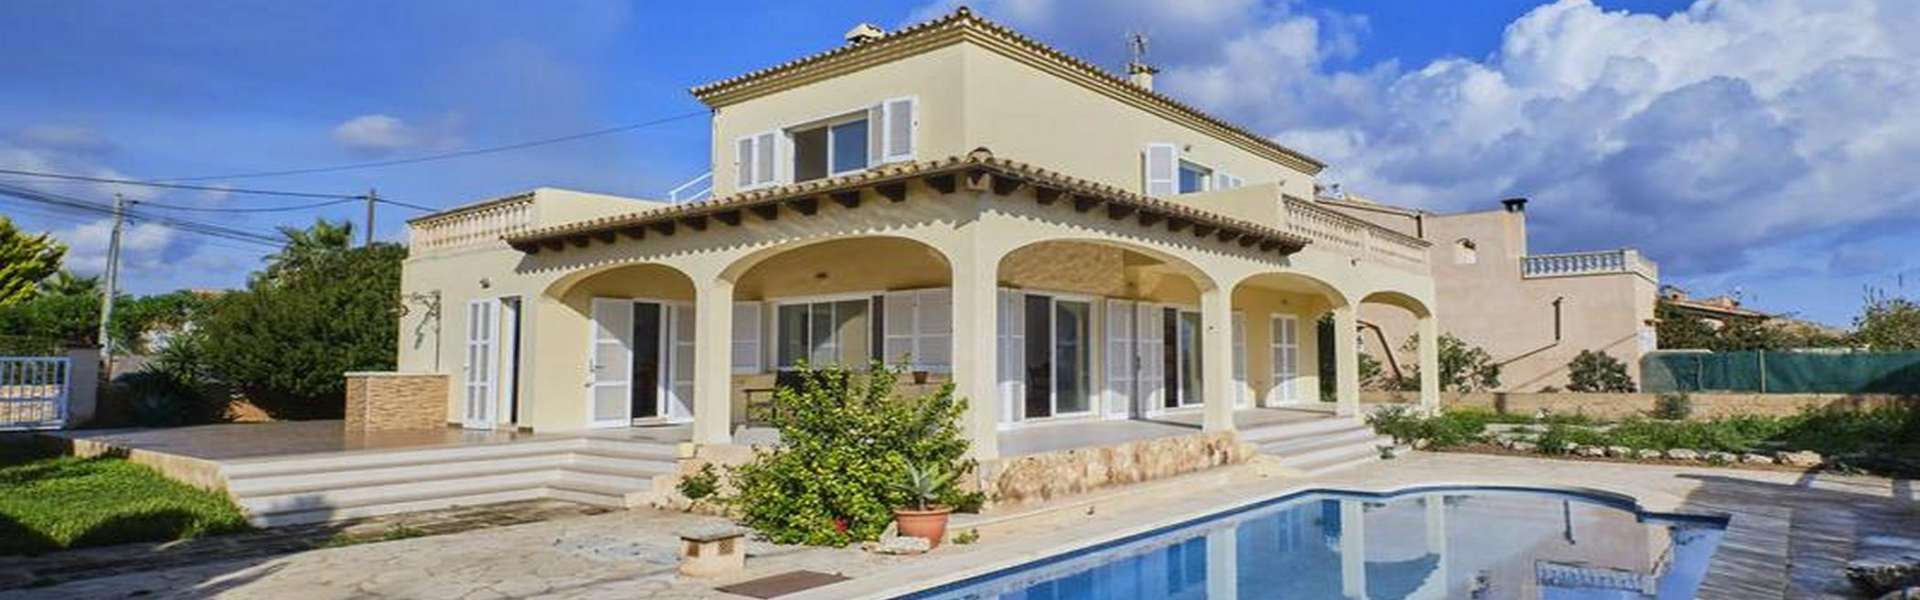 Charmantes Chalet in der Cala Llombards